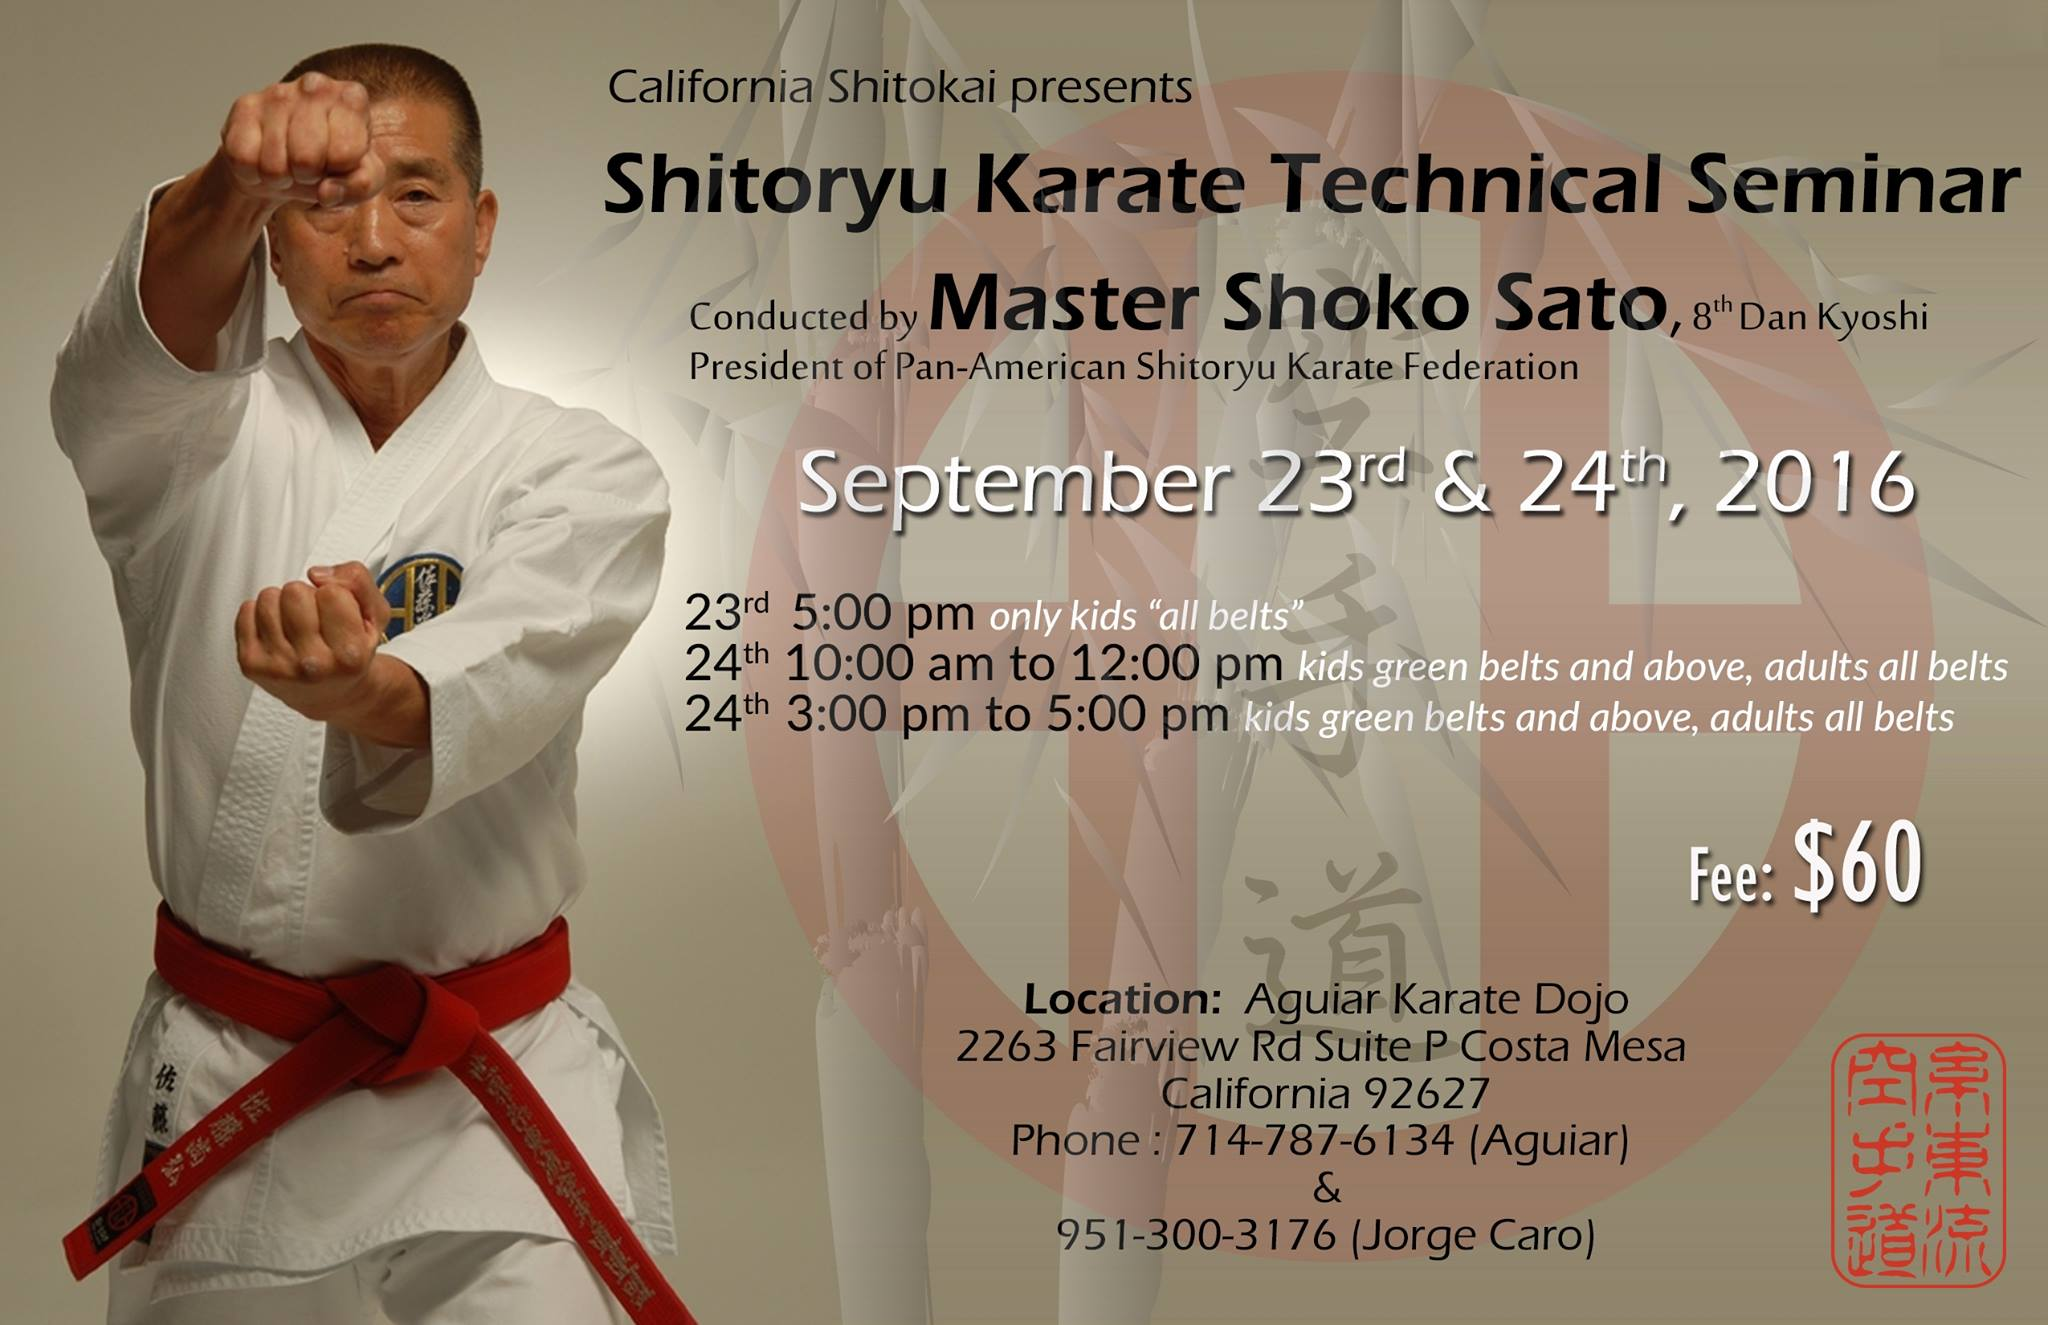 Master Shoko Sato Technical Seminar in California